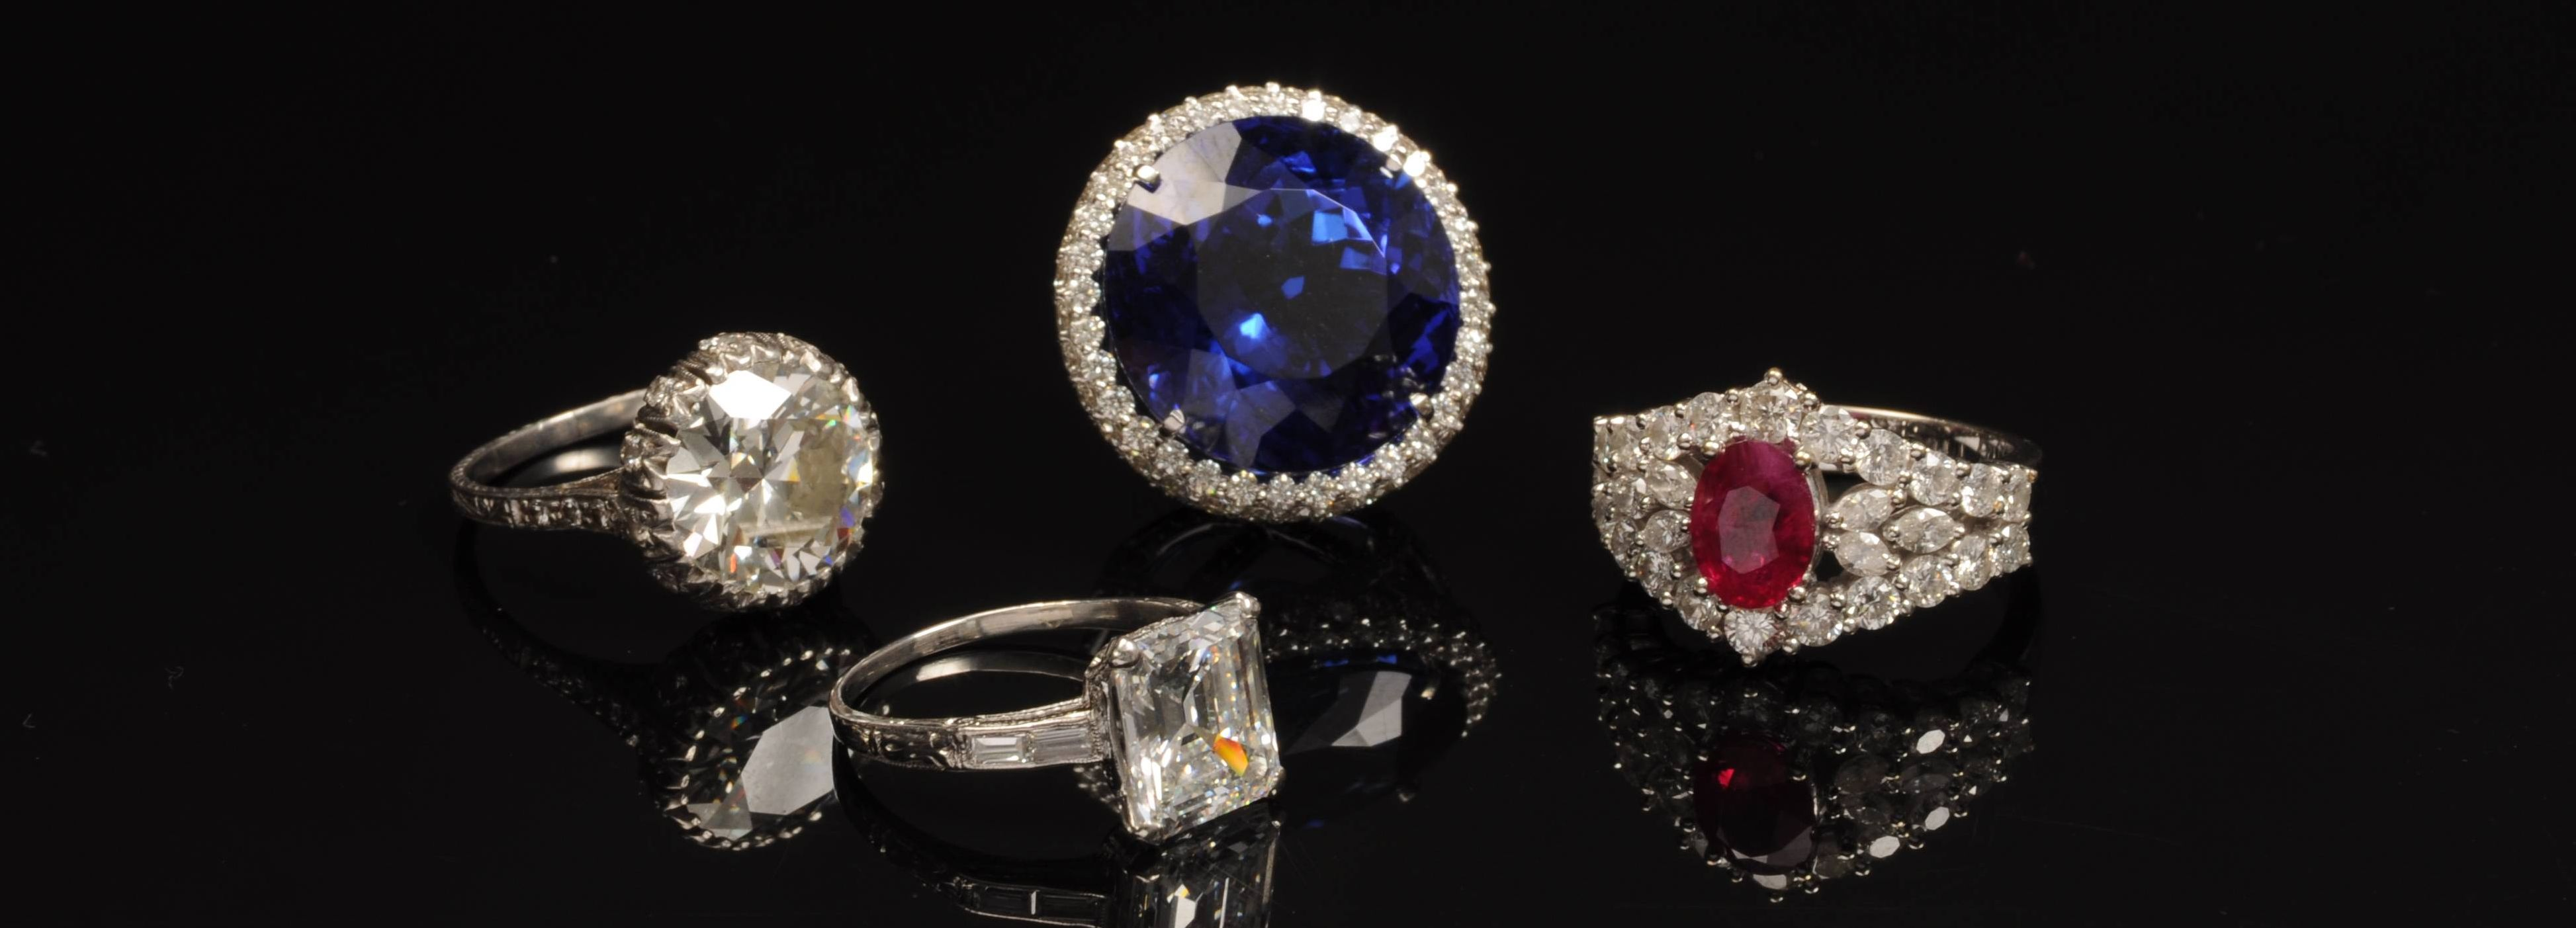 Where to sell estate jewelry antique jewelry online for Best way to sell your art online